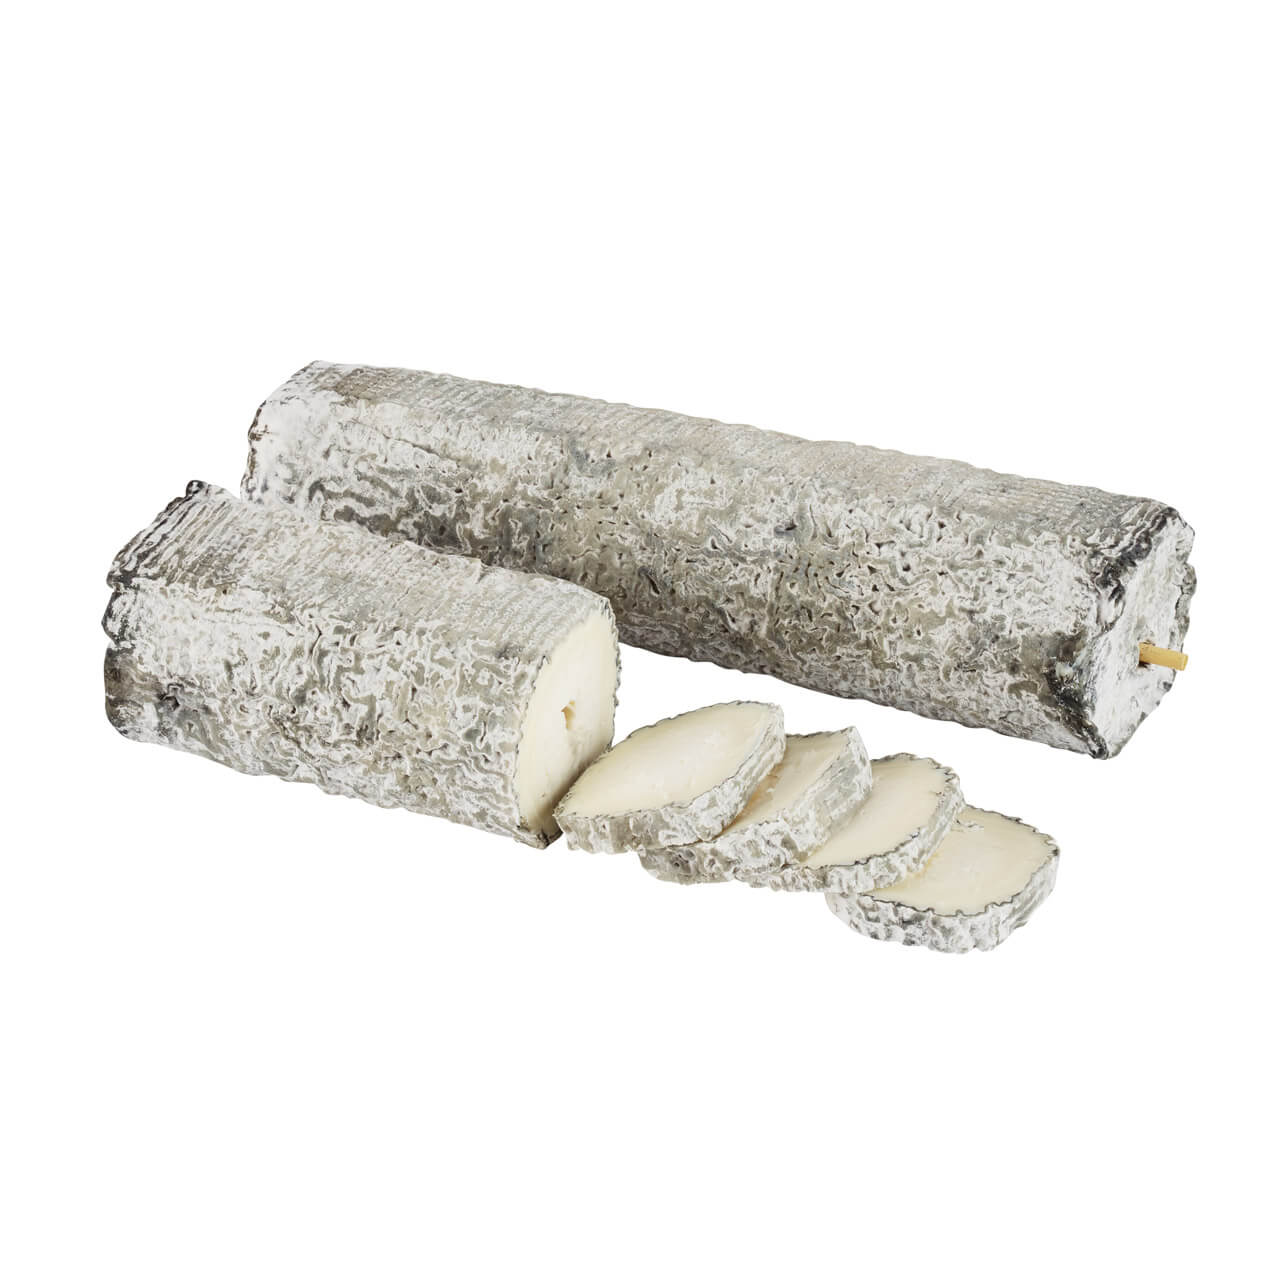 Moluengo Goats Cheese